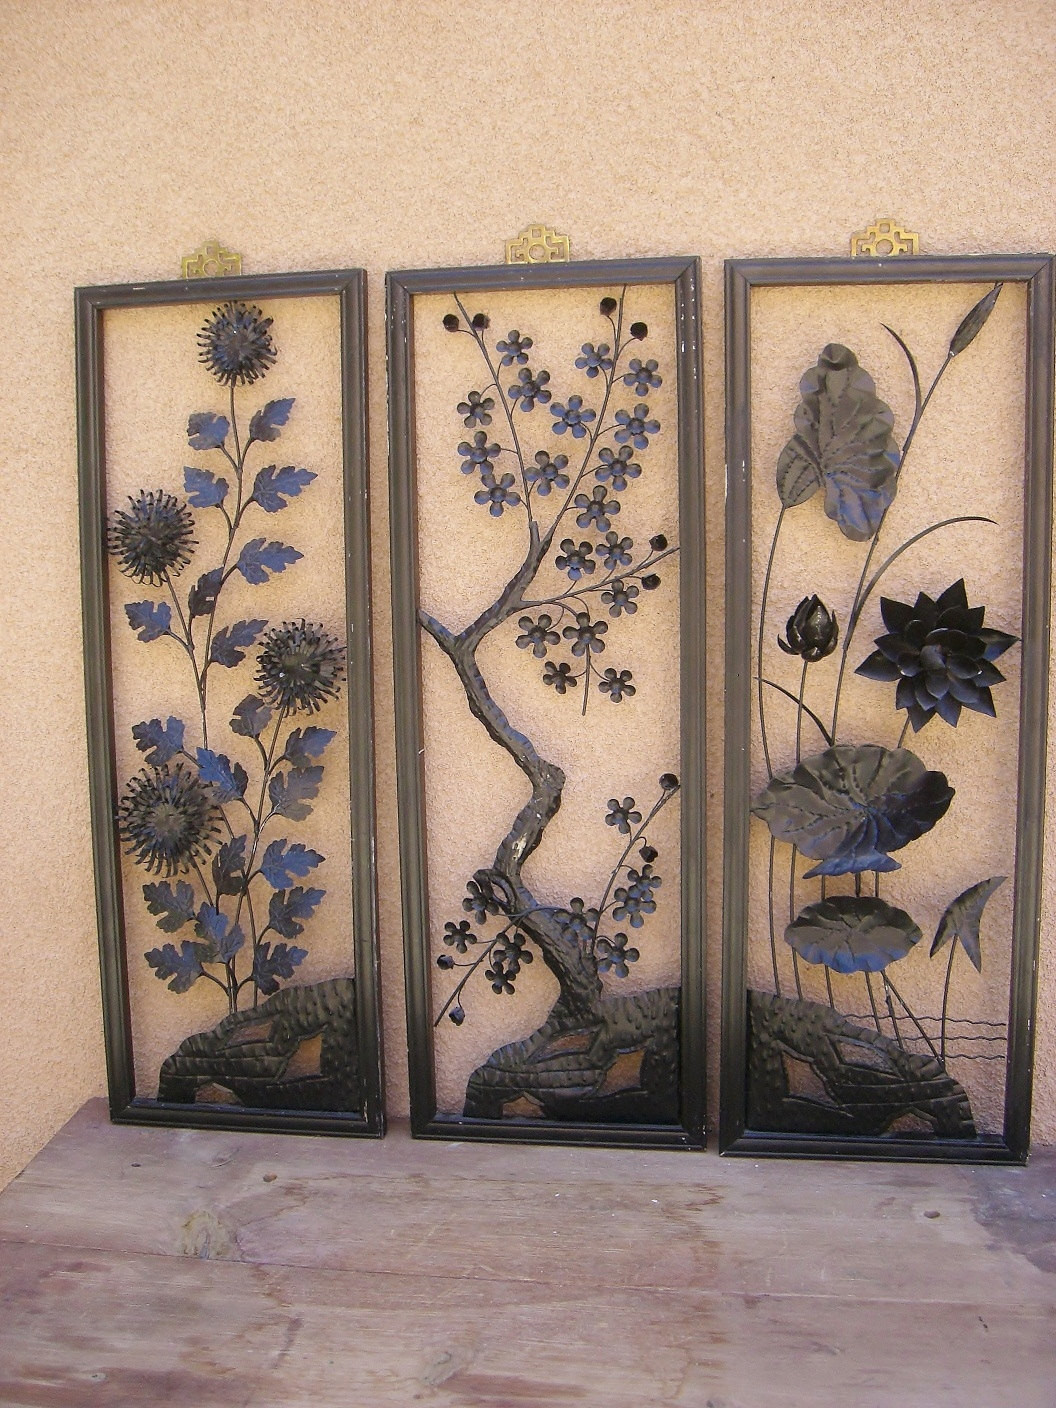 Best ideas about Asian Wall Art . Save or Pin Vintage Japanese Triptych Framed Cut Metal Wall Art Now.